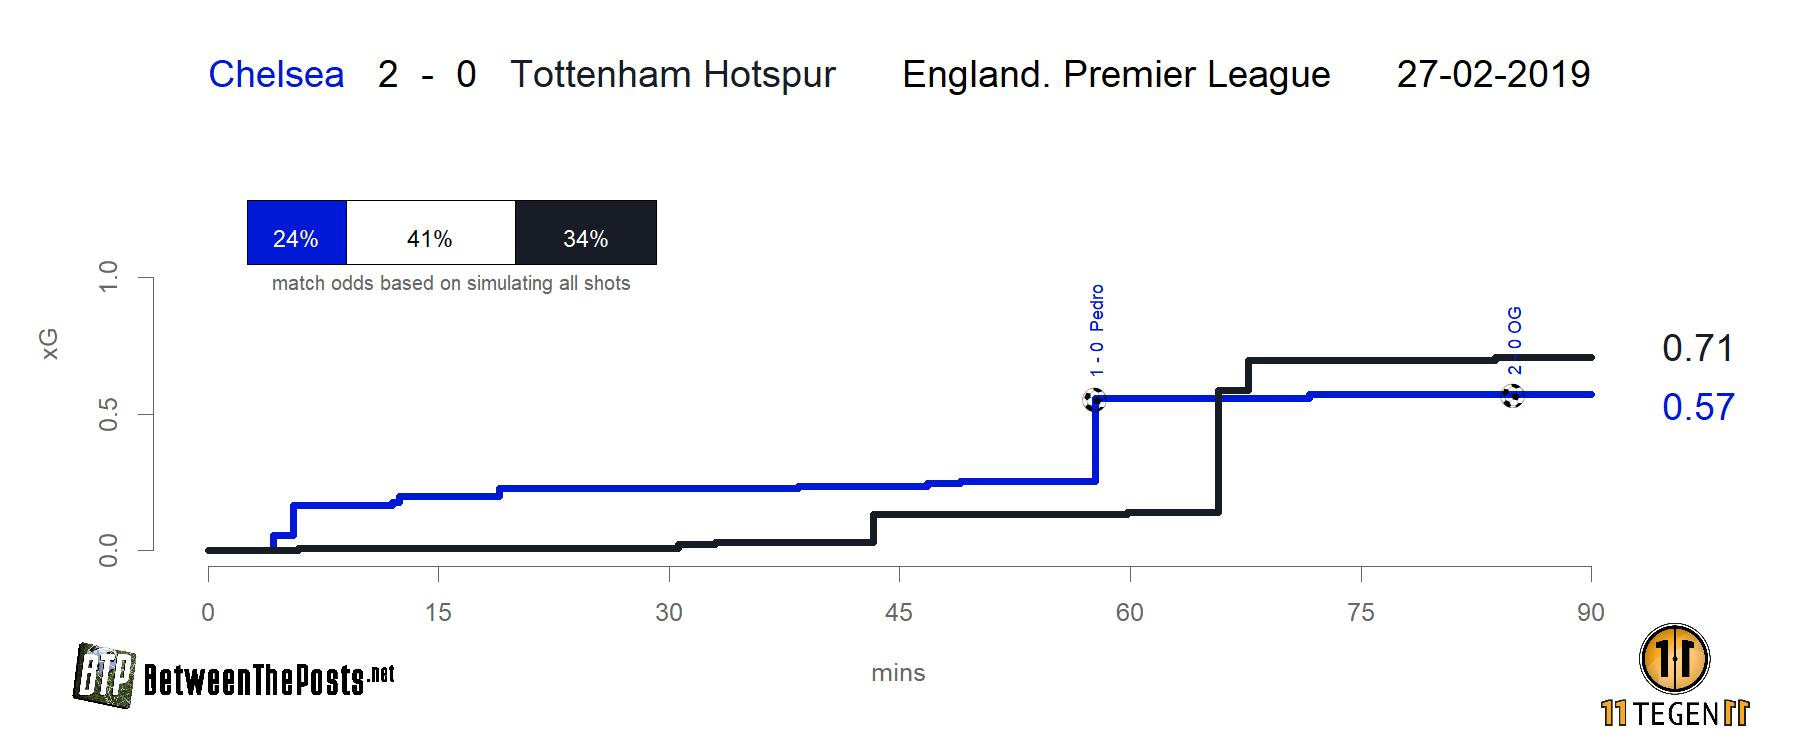 Expected goals plot Chelsea - Tottenham Hotspur 2-0 Premier League